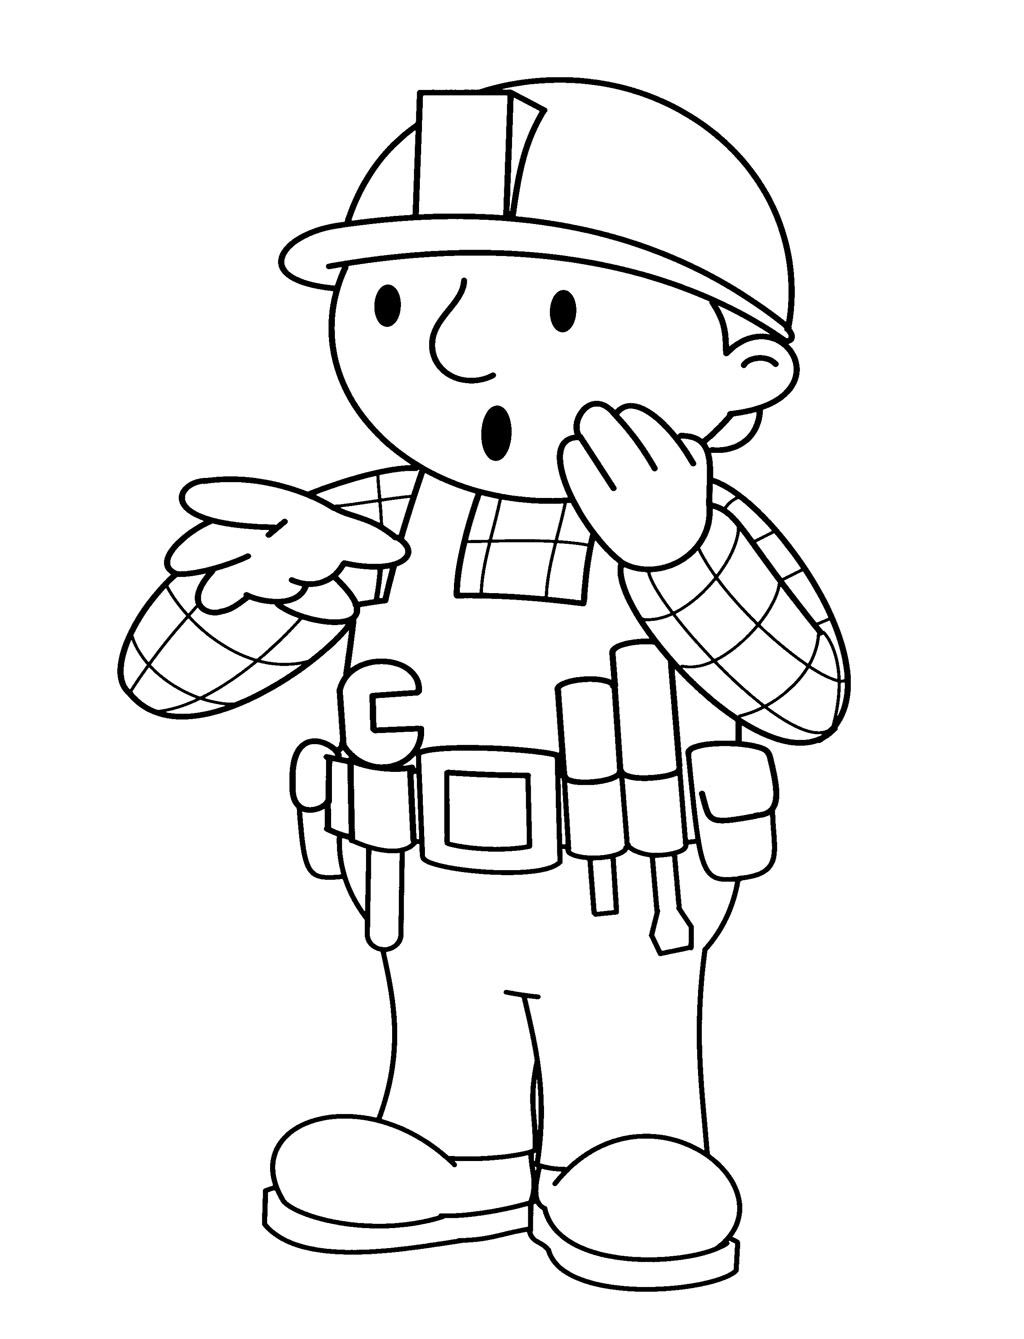 Bob The Builder Shocked Coloring Page For Kids